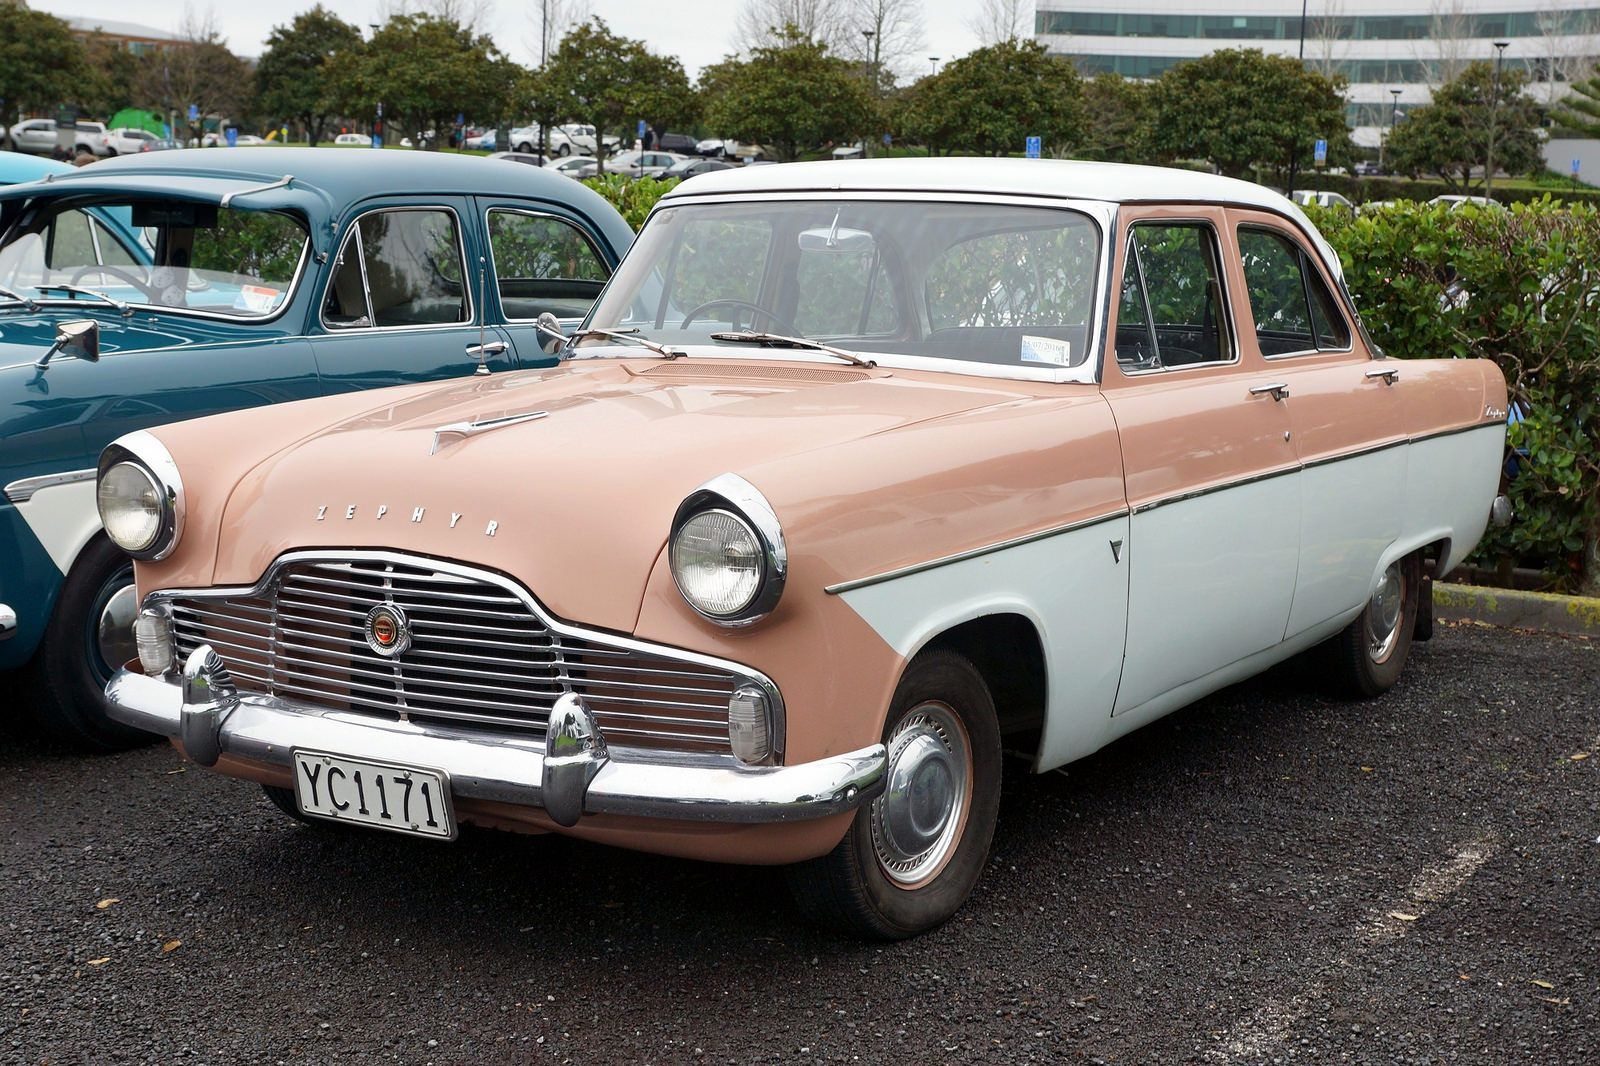 1960 Ford Zephyr Classic Cars British Ford Zephyr Classic Cars Vintage